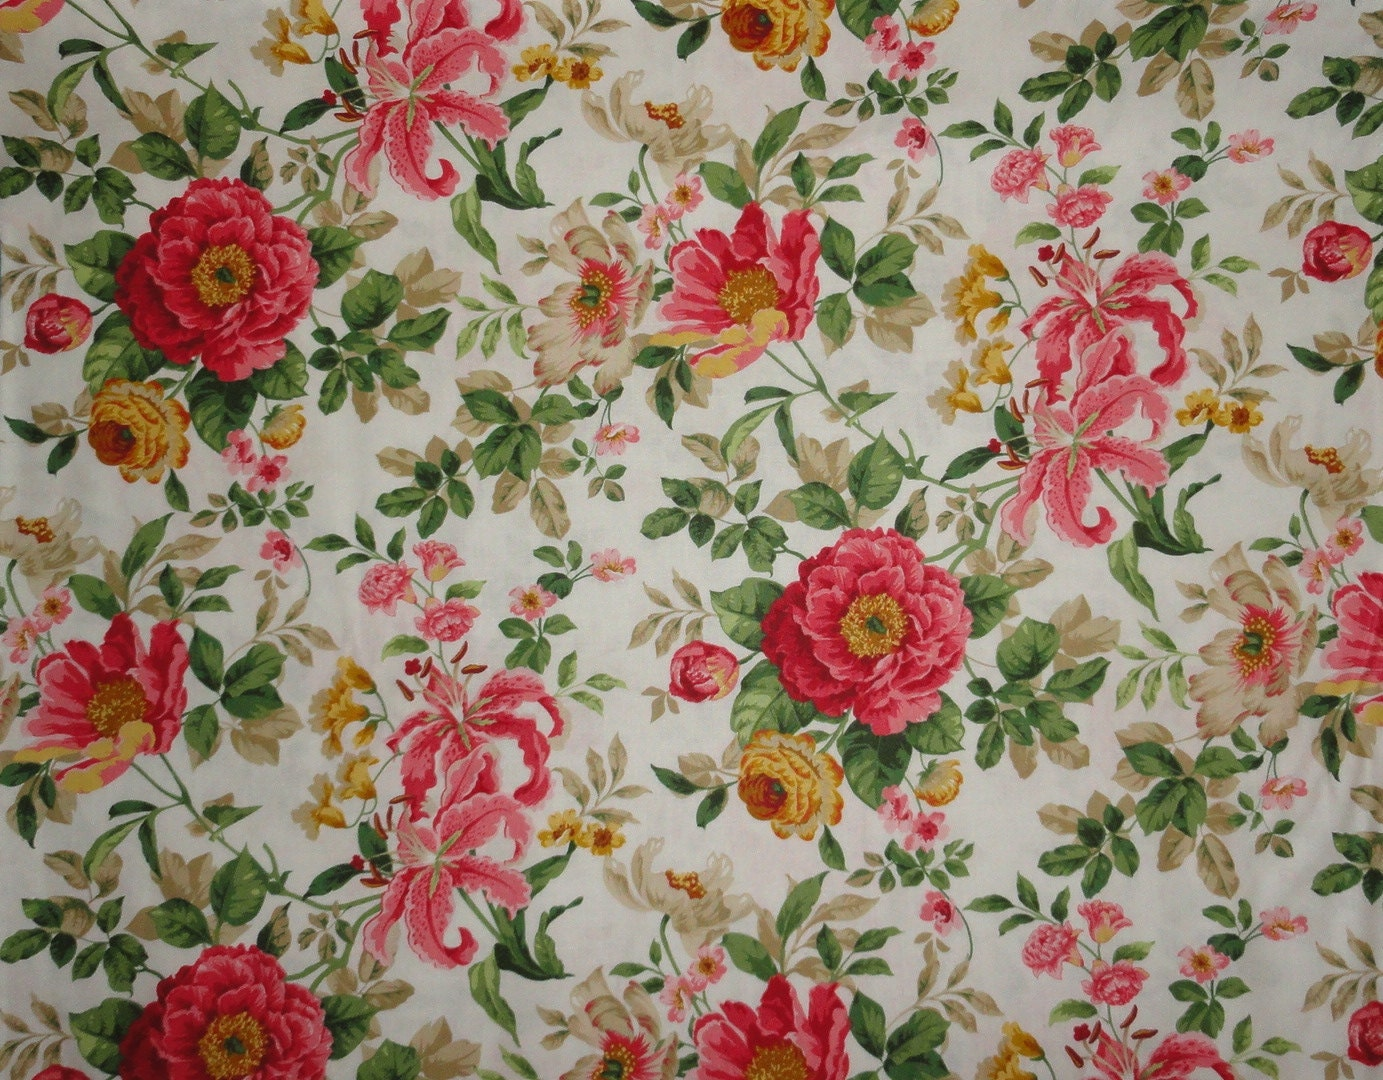 rose fabric shabby roses chic roses shabby and chic cottage roses fabric by the yard. Black Bedroom Furniture Sets. Home Design Ideas